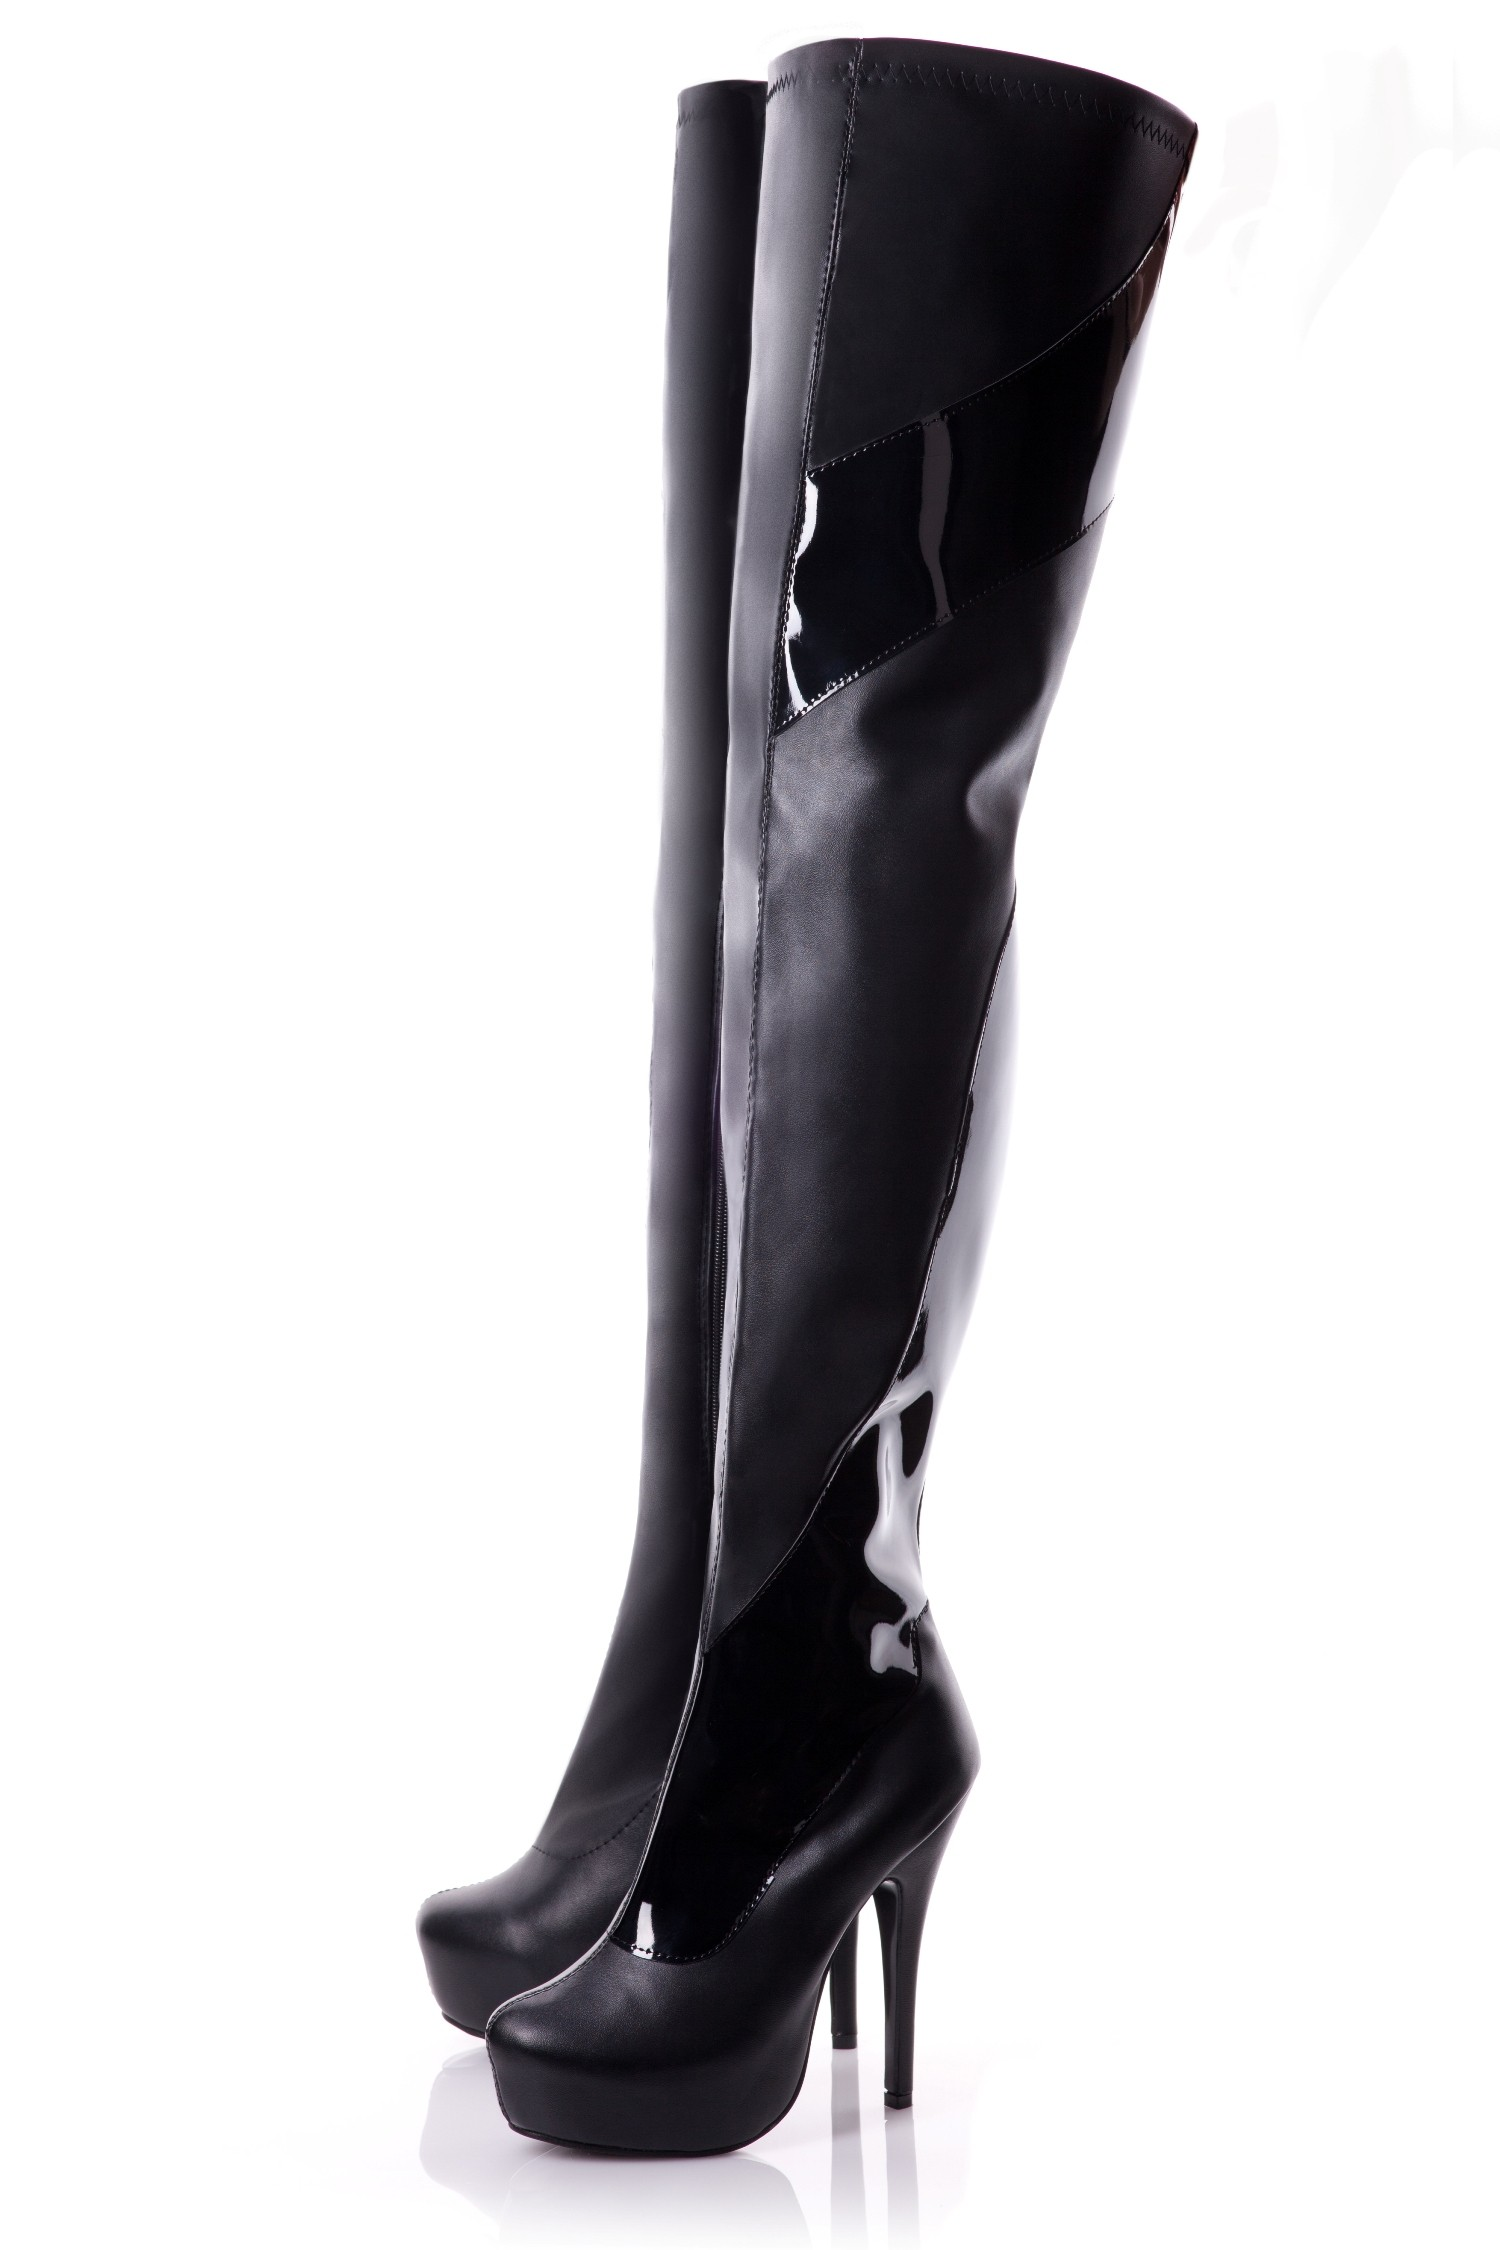 Playgirl Crotch High Black Matt Boots With Patent Detail